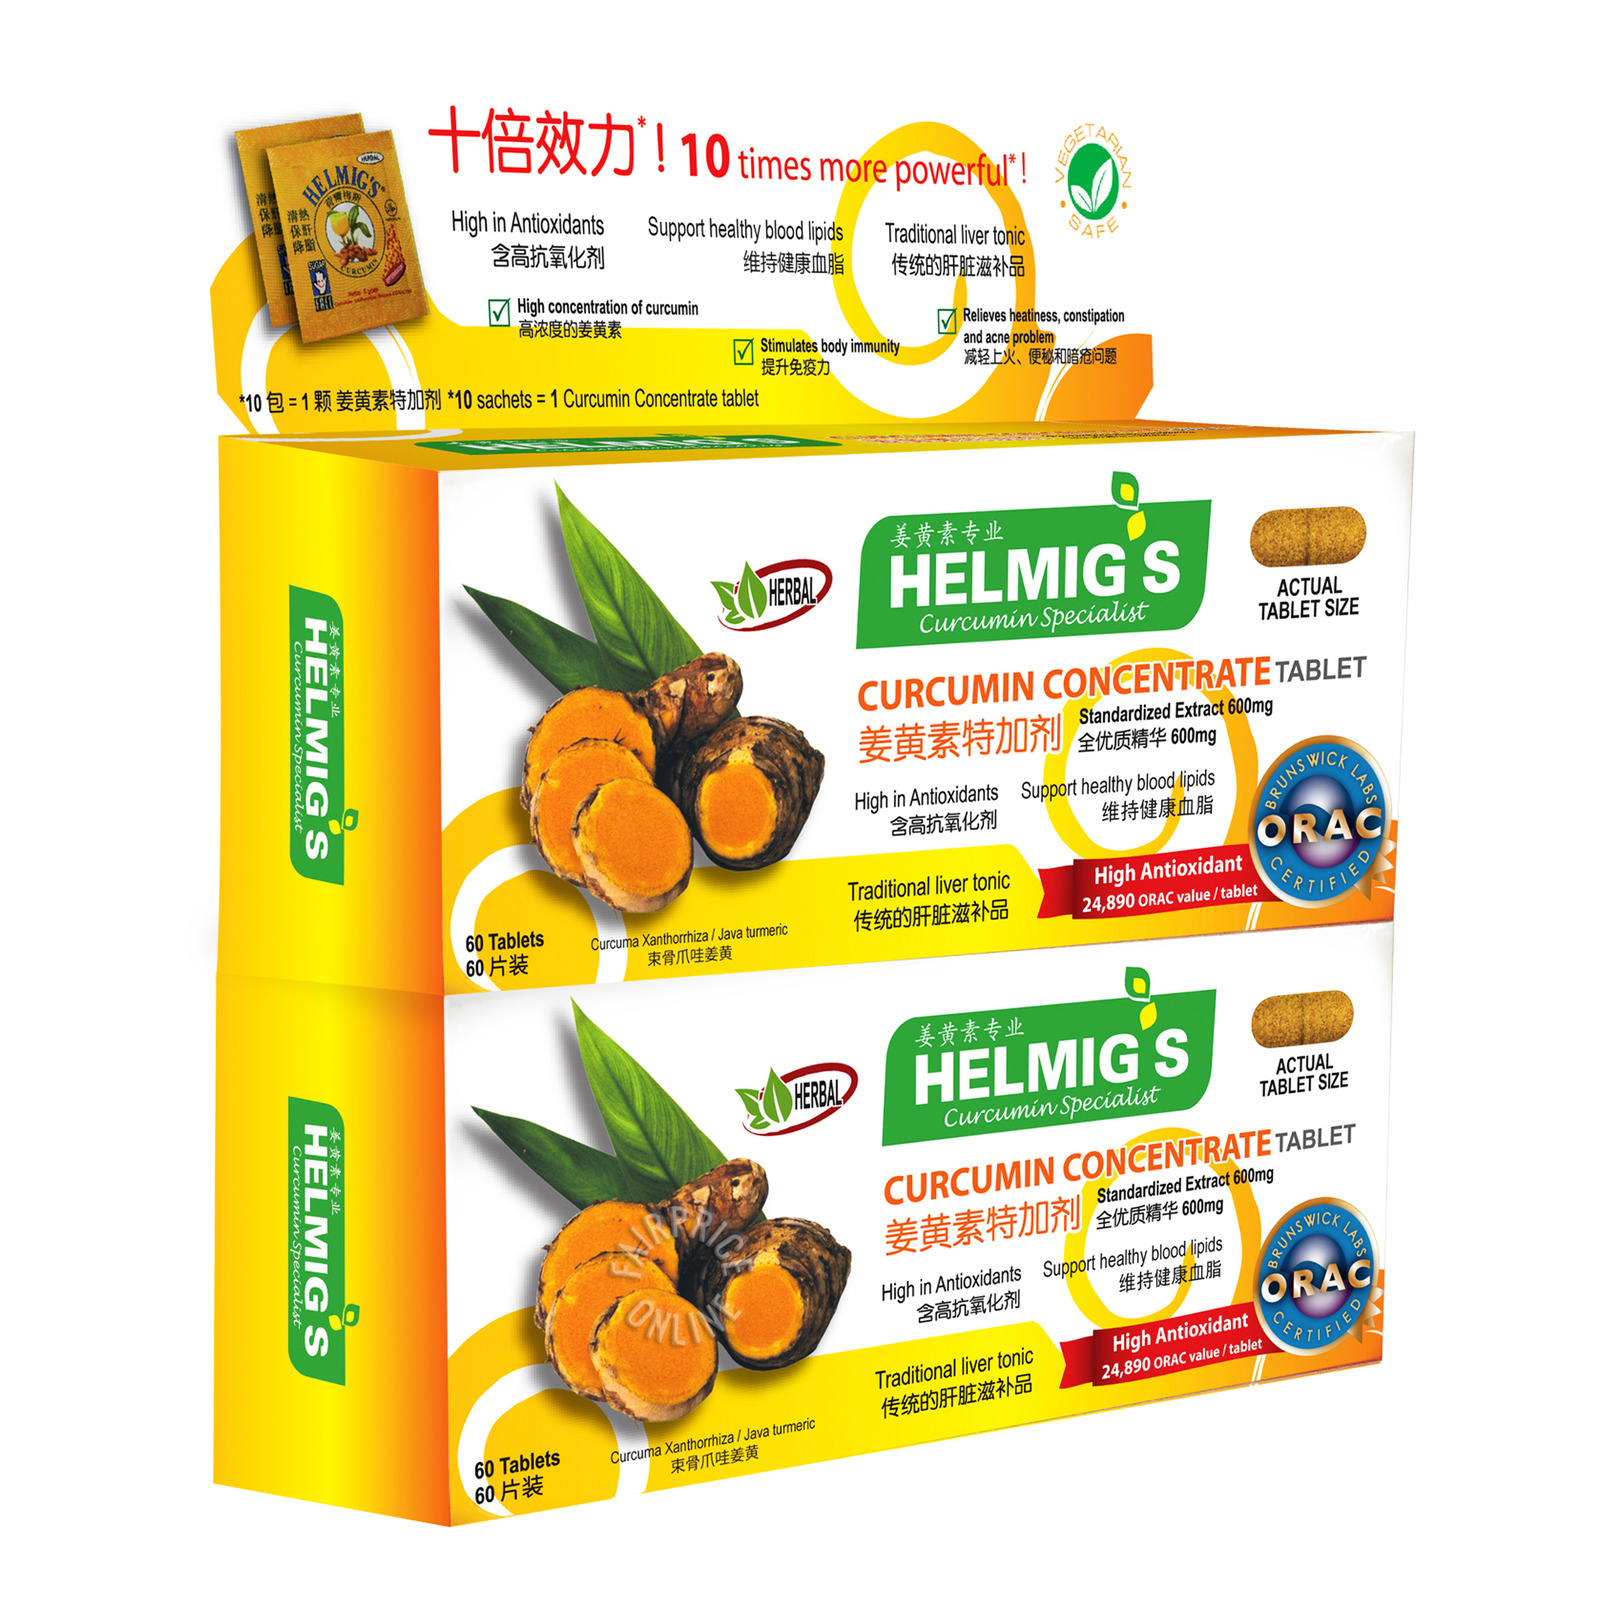 Helmig's Curcumin Concentrate Tablet - Herbal